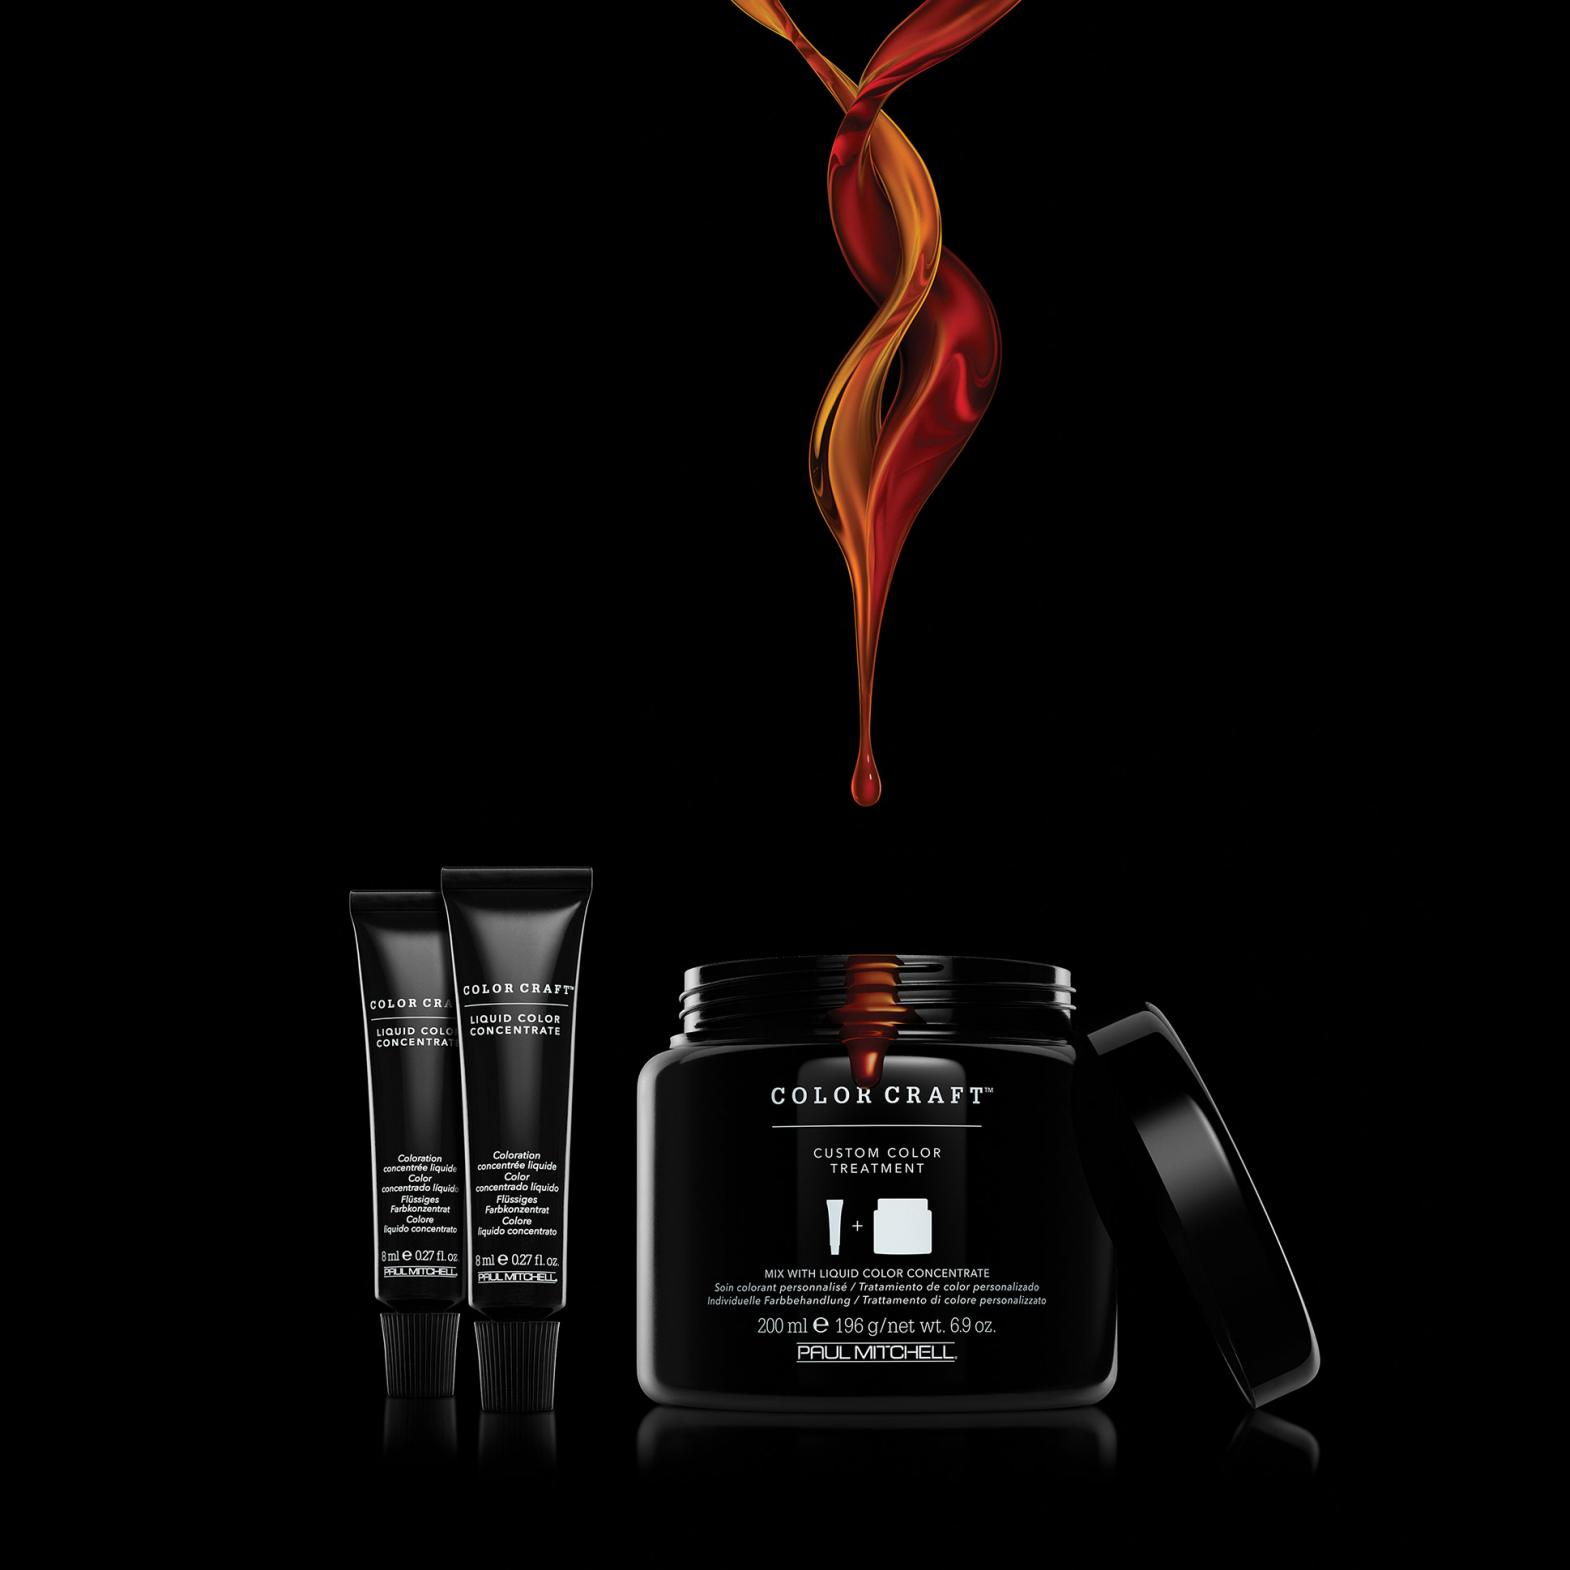 Paul Mitchell's Color Craft Conditioning Treatment